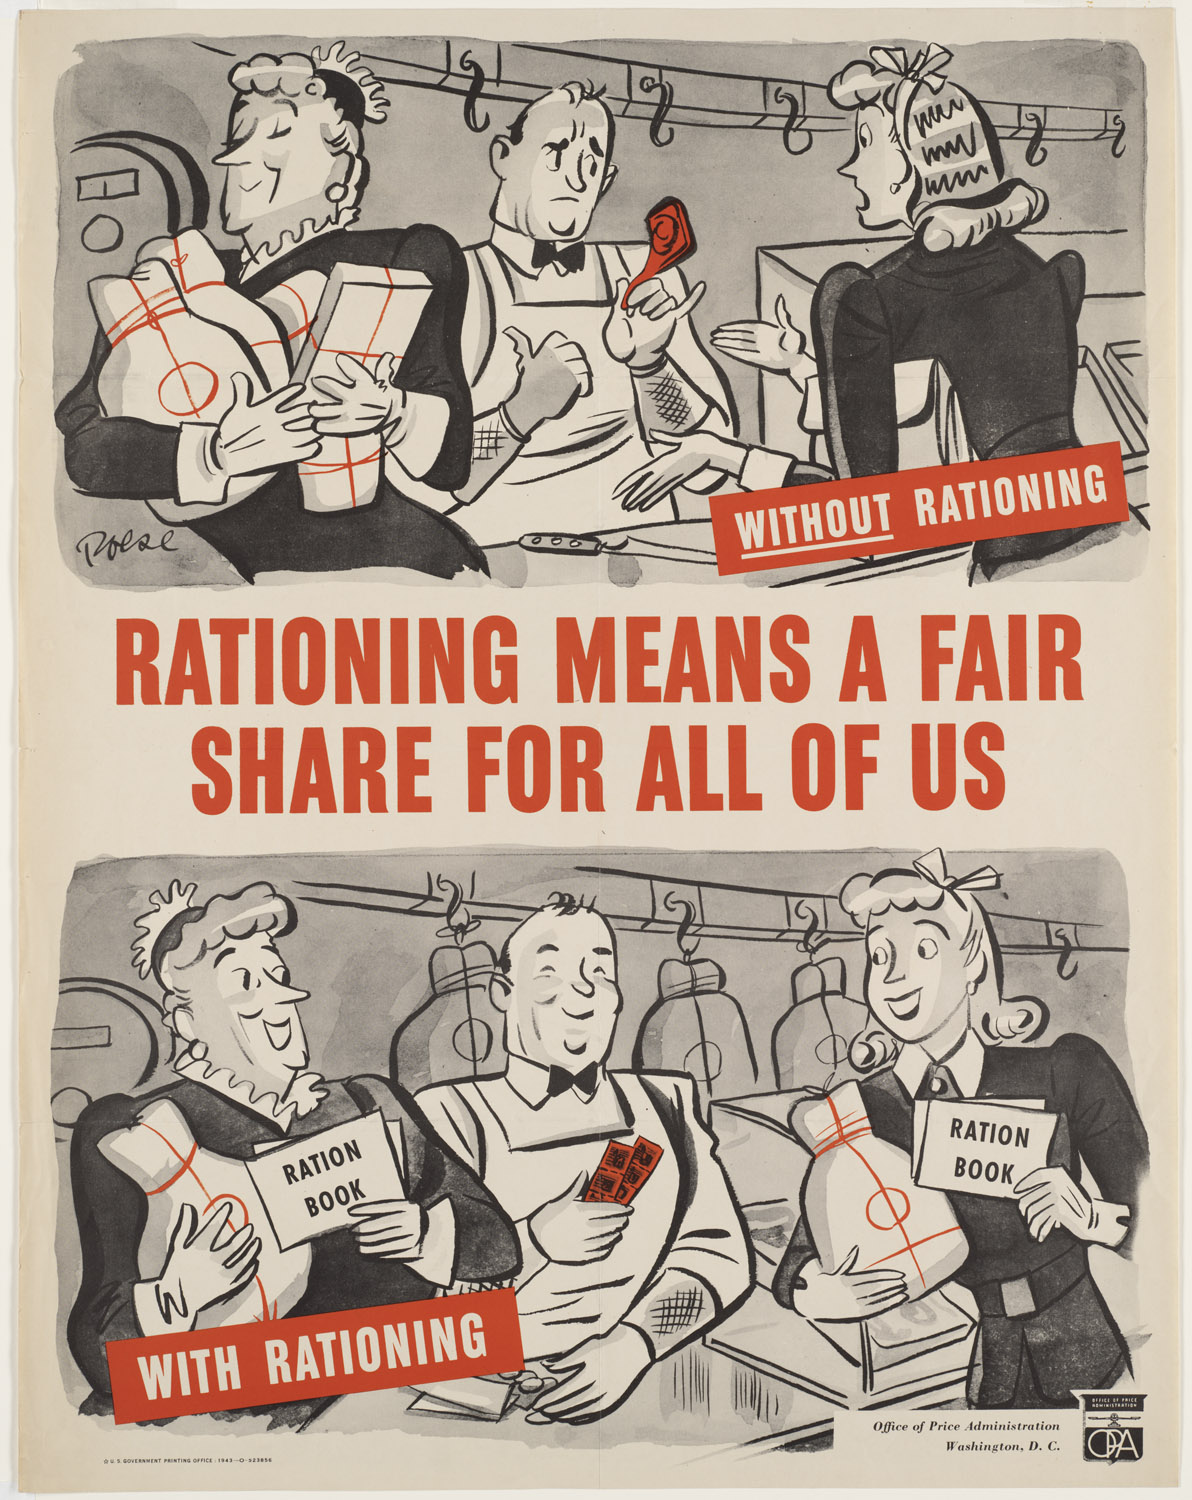 An Image of a Poster Reading 'Rationing Means a Fair Share for all of us'